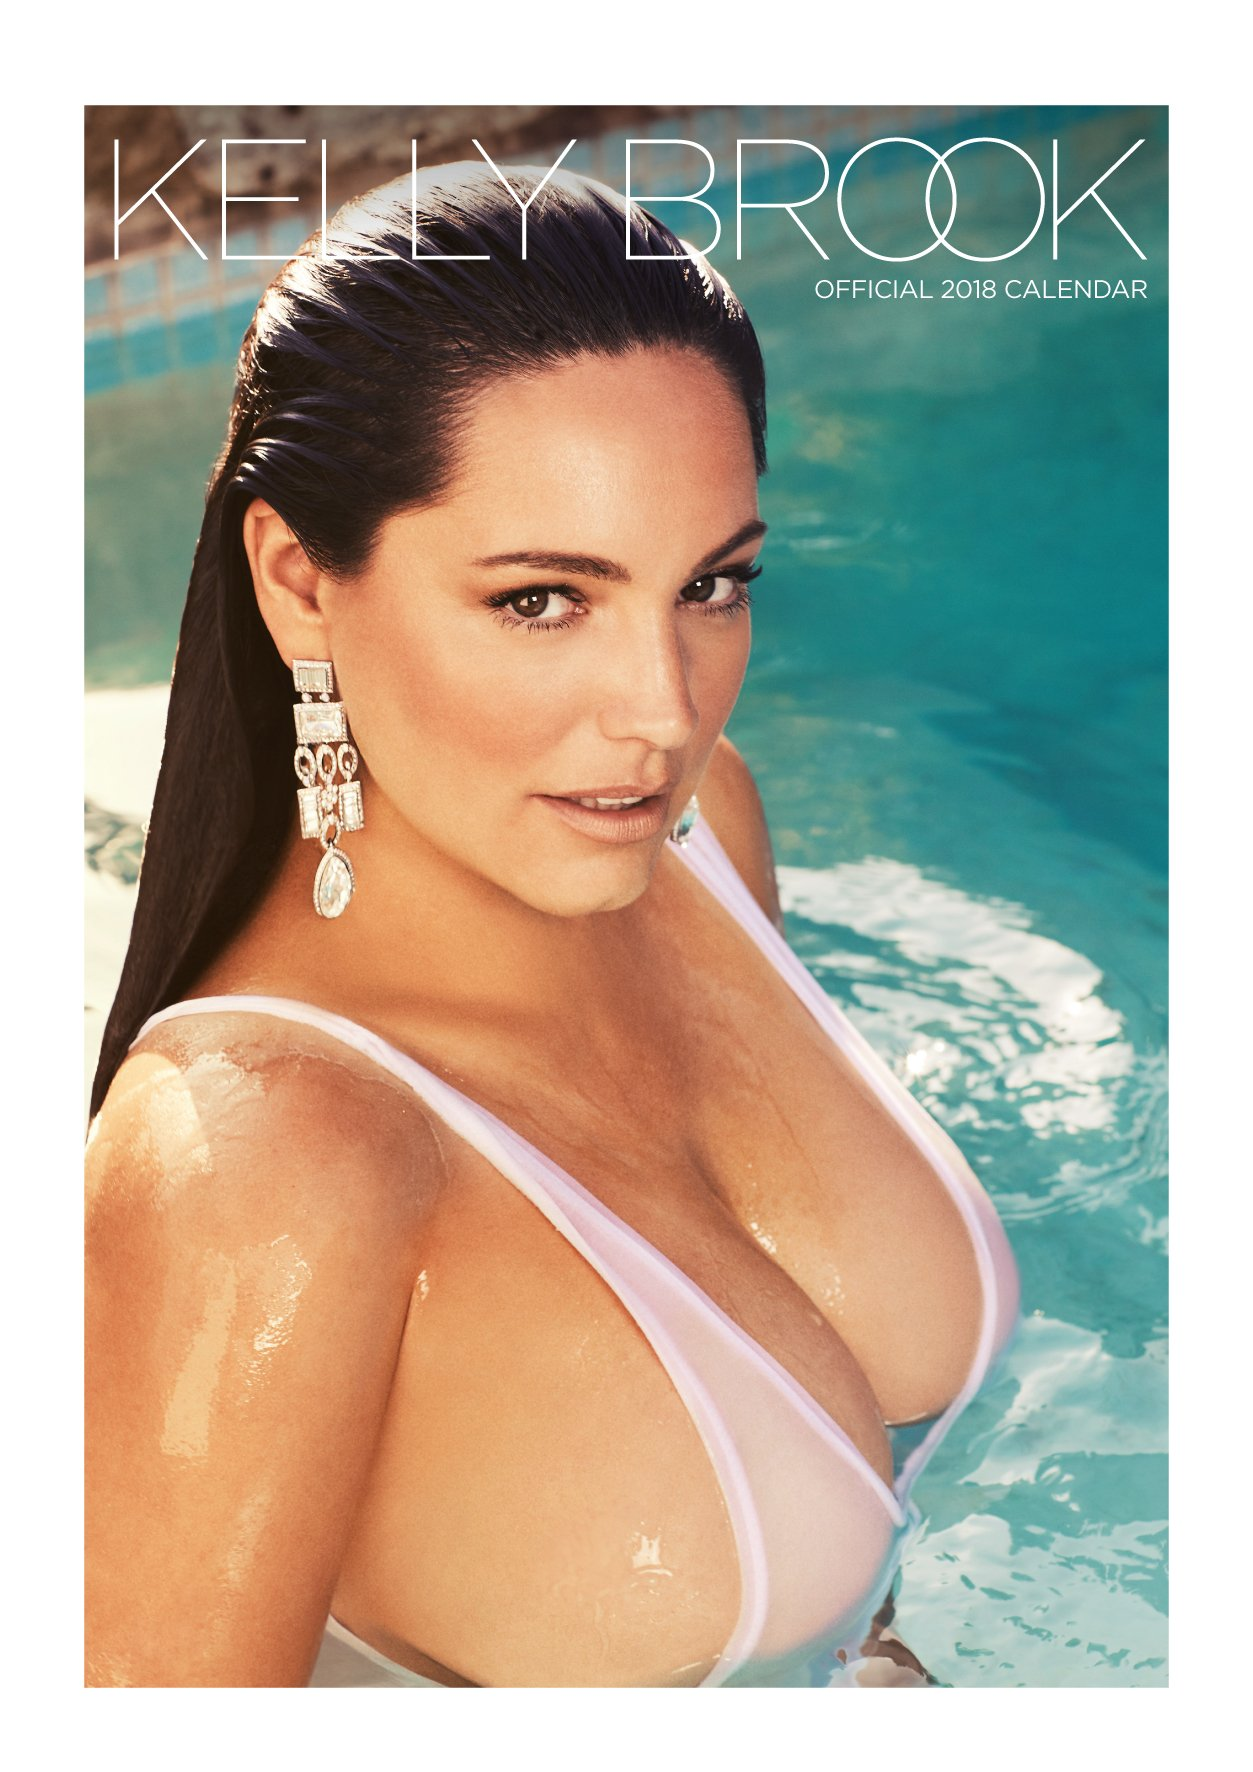 Kelly Brook Official 2018 Calendar - A3 Poster Format